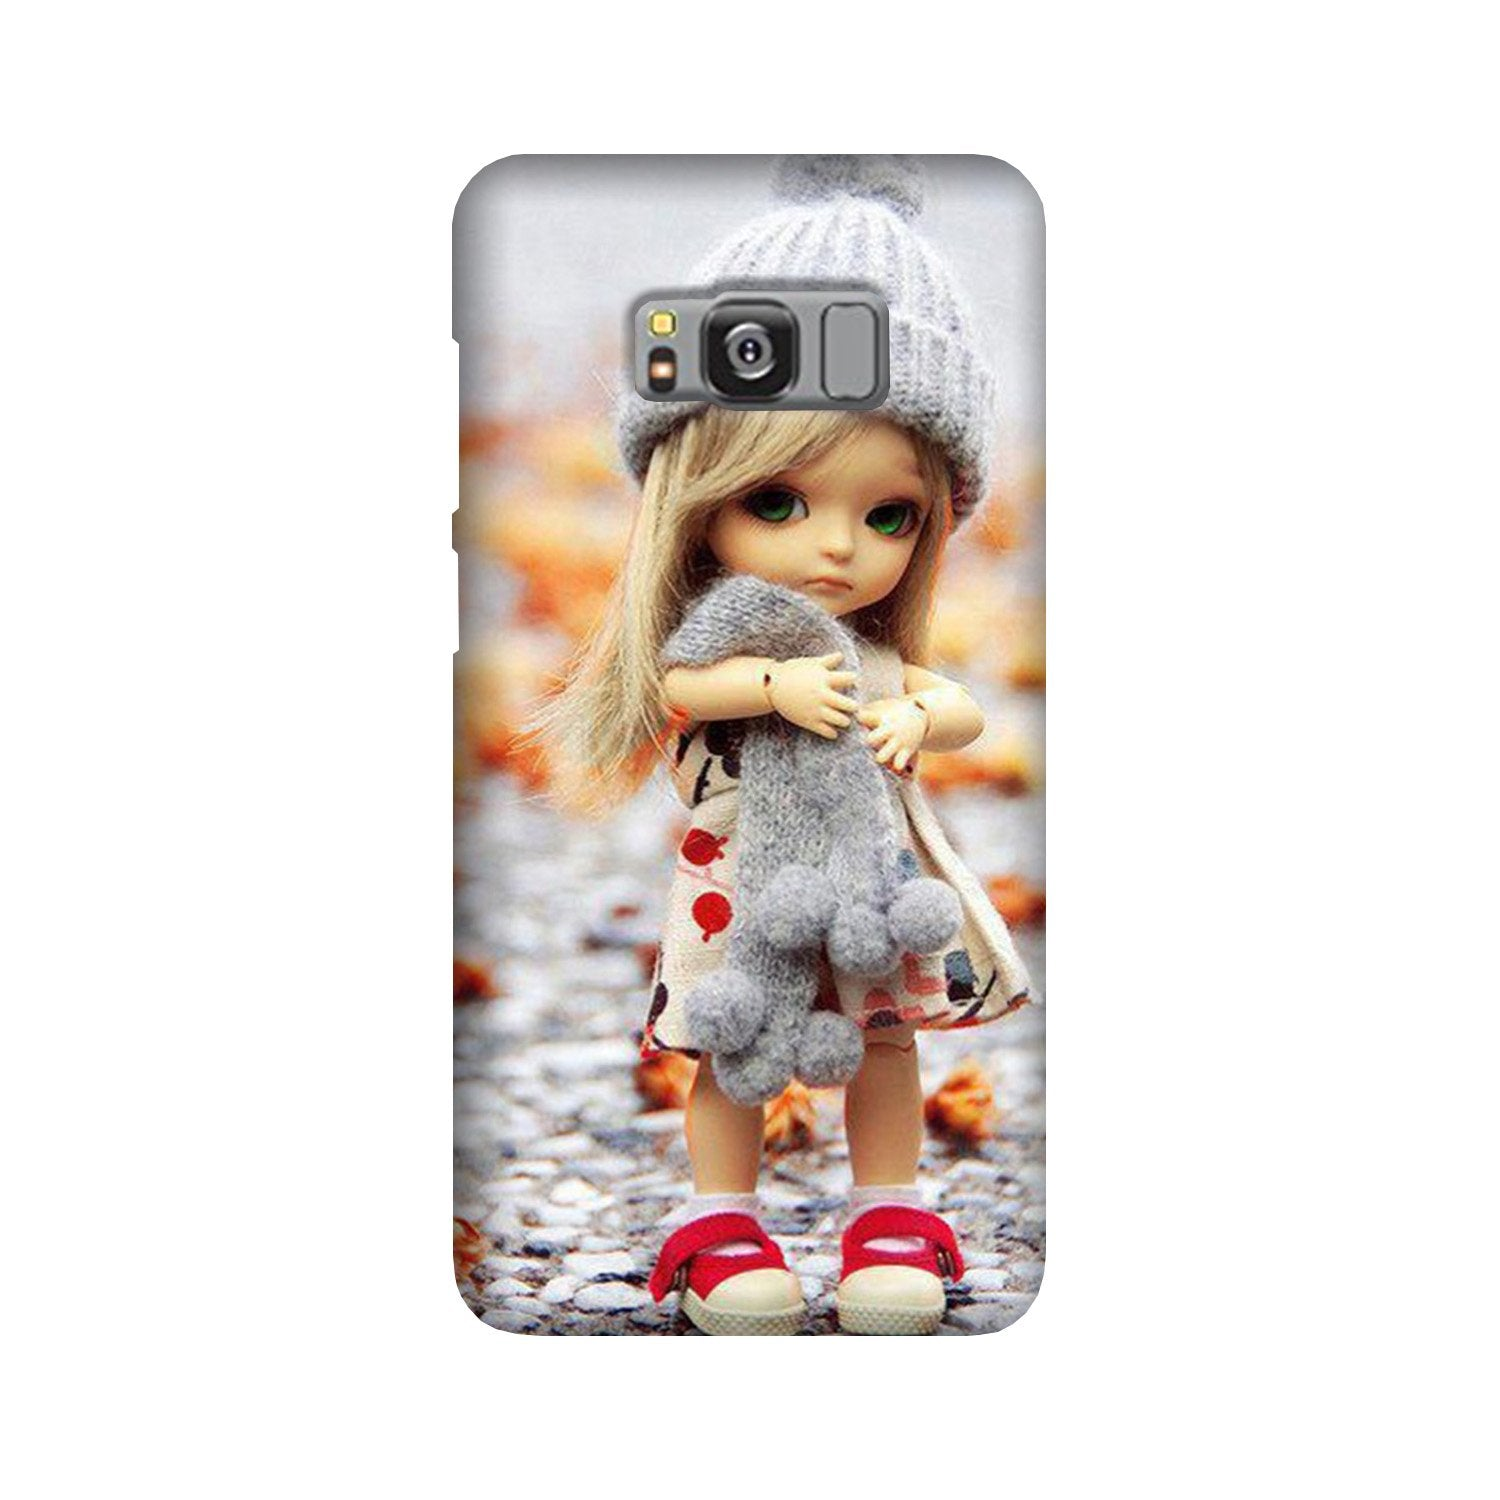 Cute Doll Case for Galaxy S8 Plus